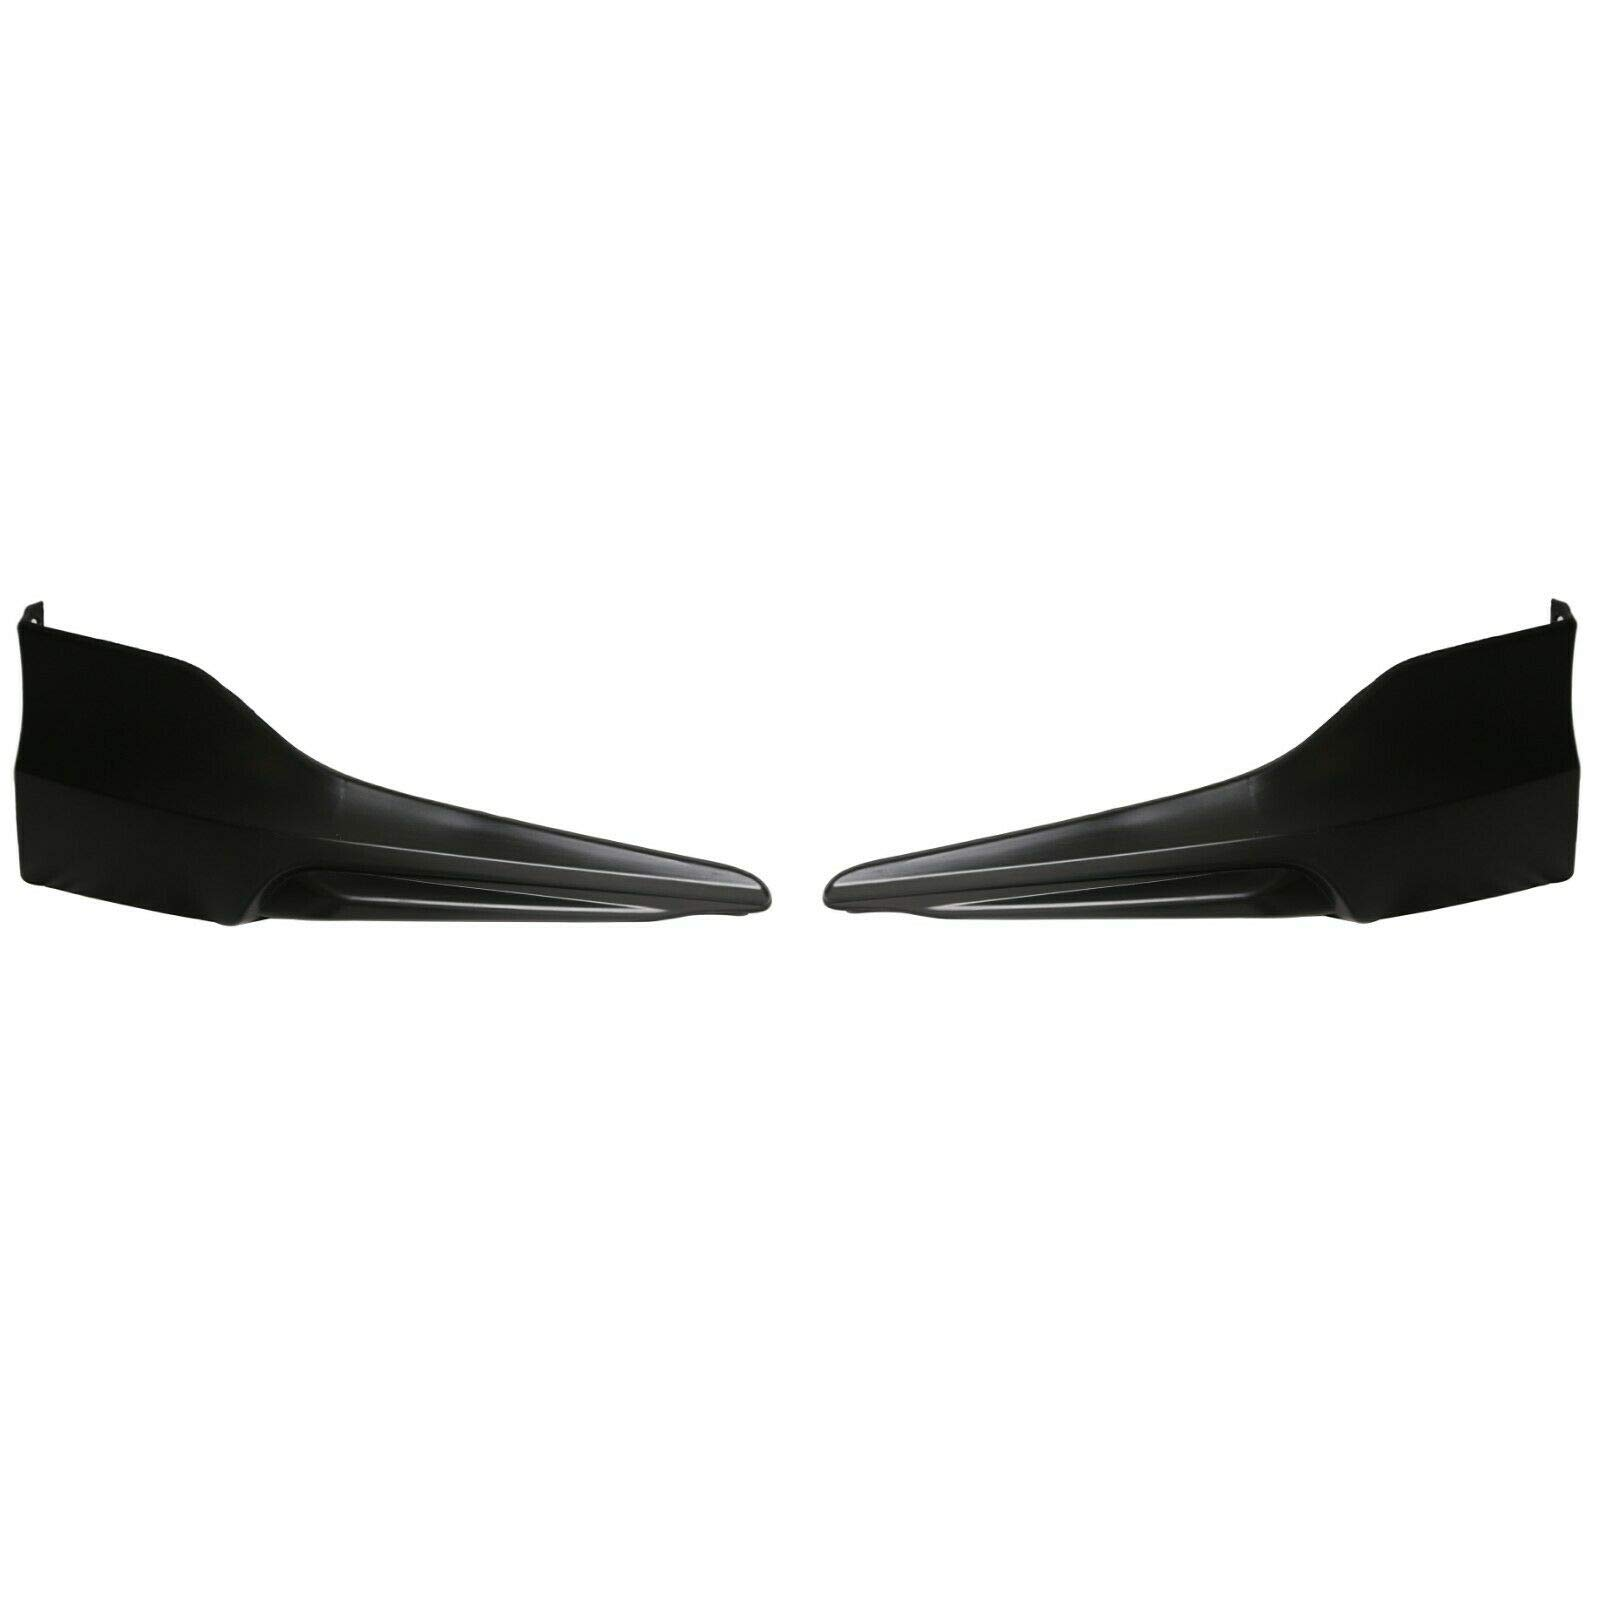 2PC HFP Style Front Bumper Lip Underbody Spoiler Splitter for 2016-2017 Honda Accord 4 Door